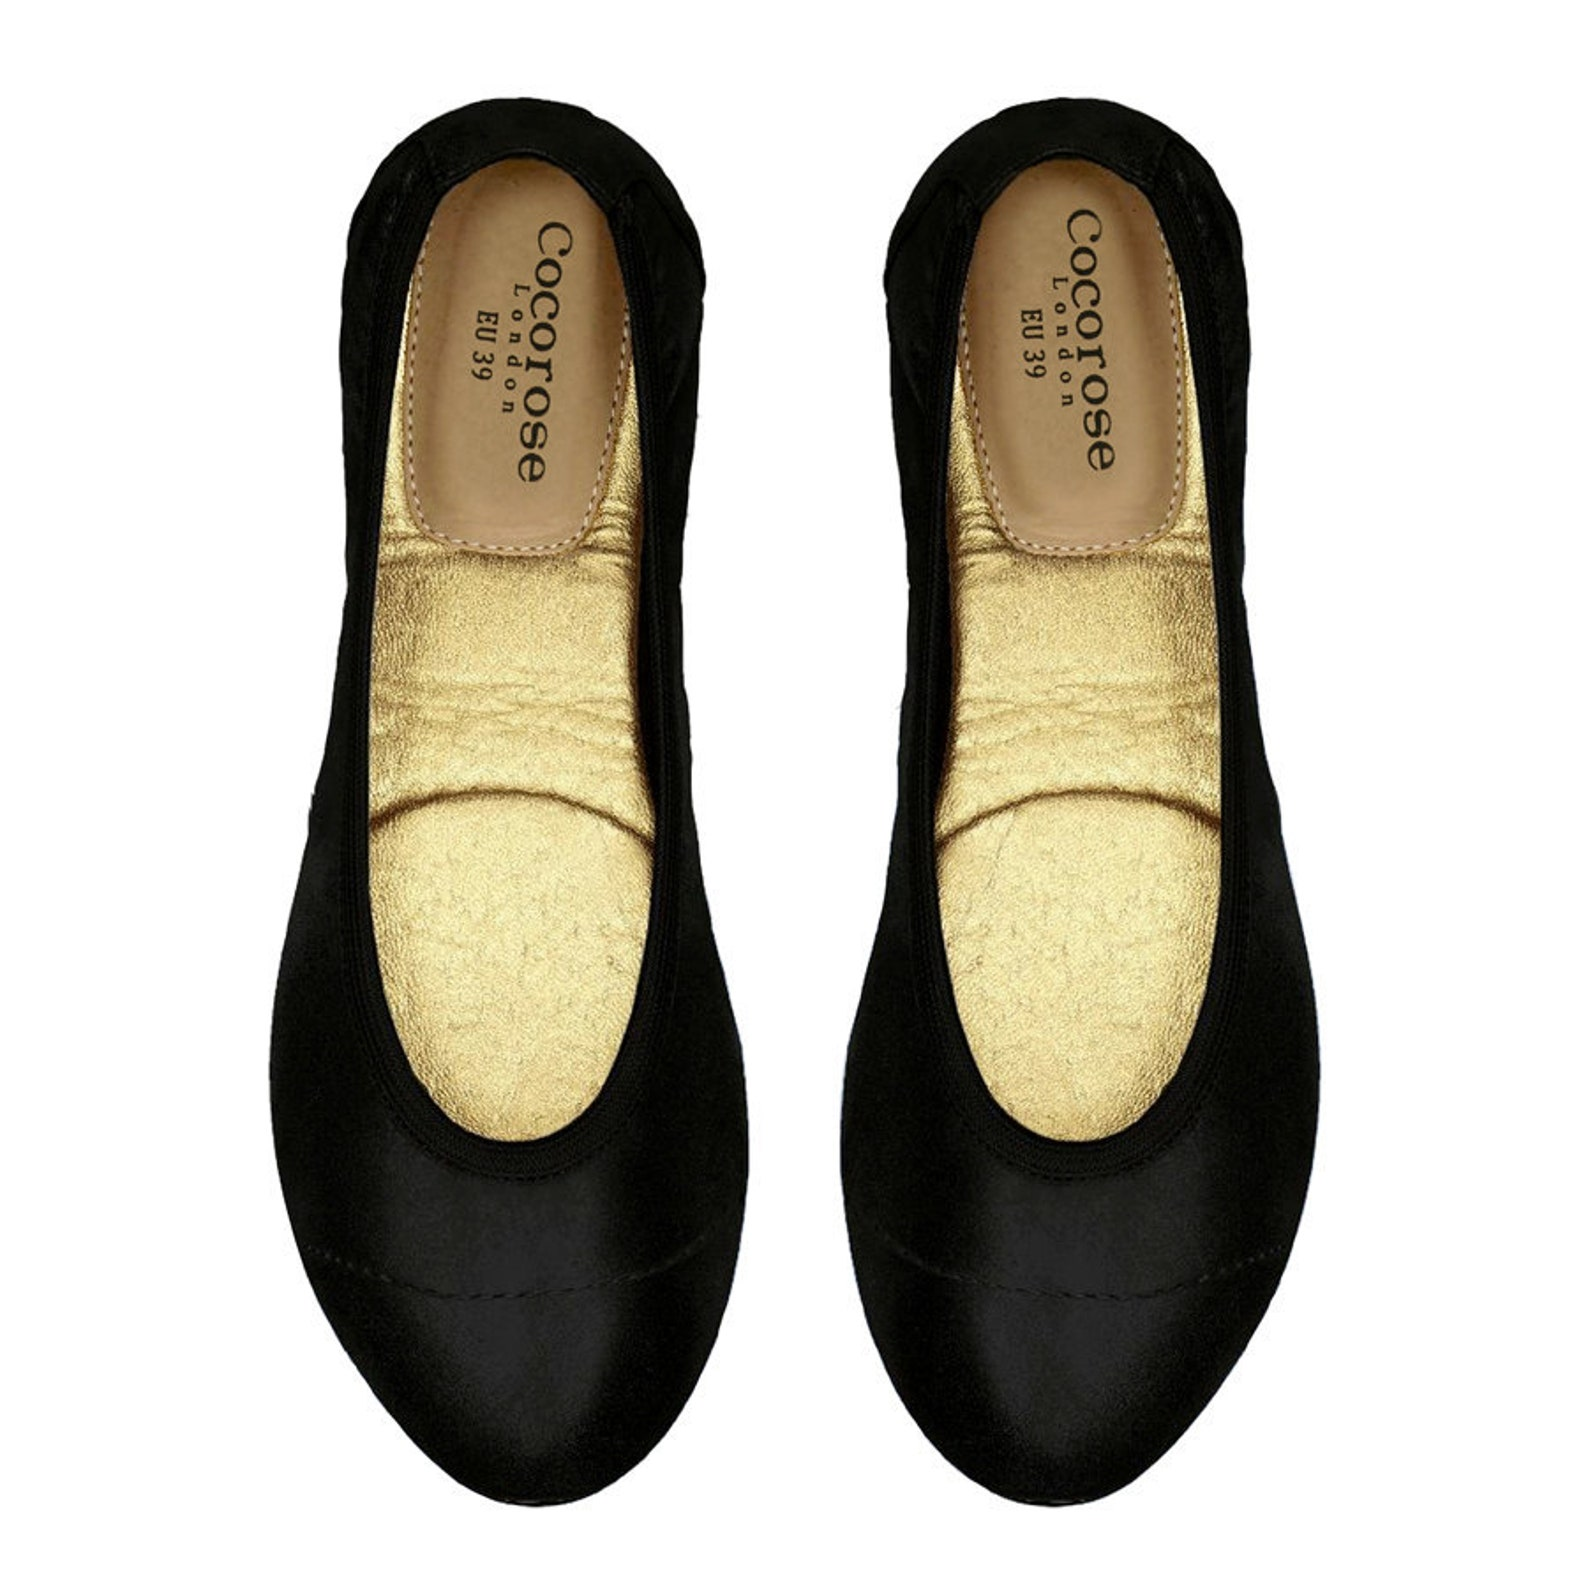 cocorose foldable shoes - barbican ladies ballet pumps